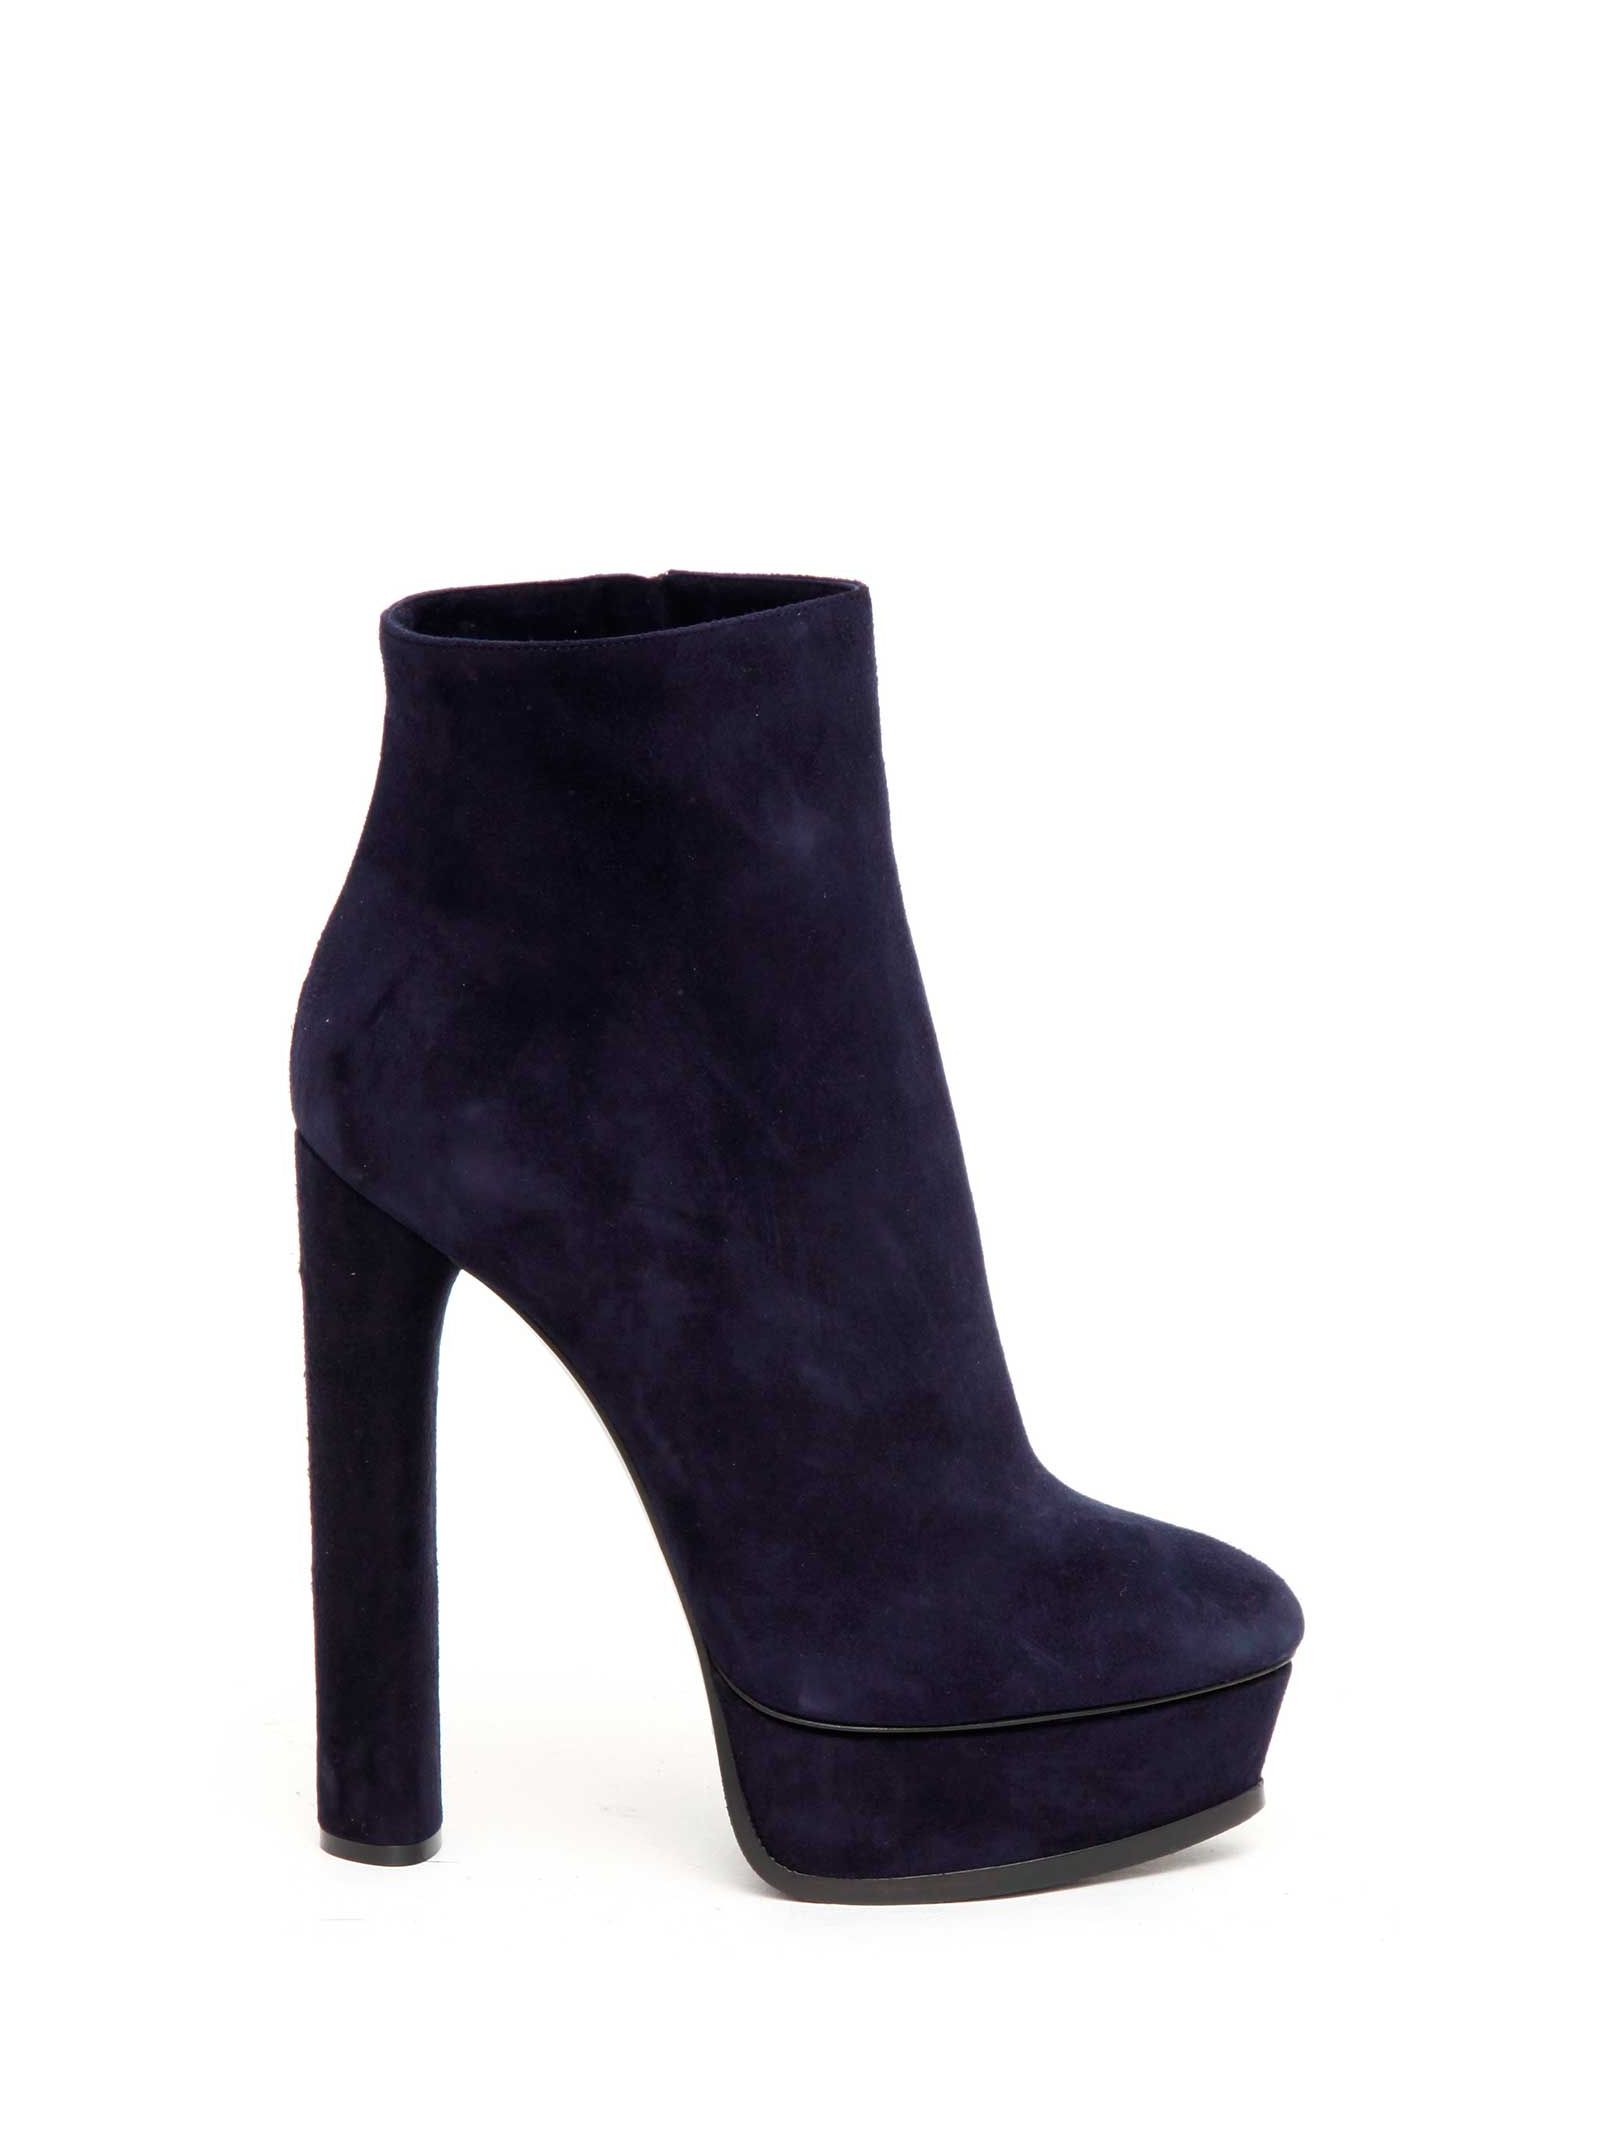 Suede platform booties featuring side zip closure from Casadei. Heel: 140mm.